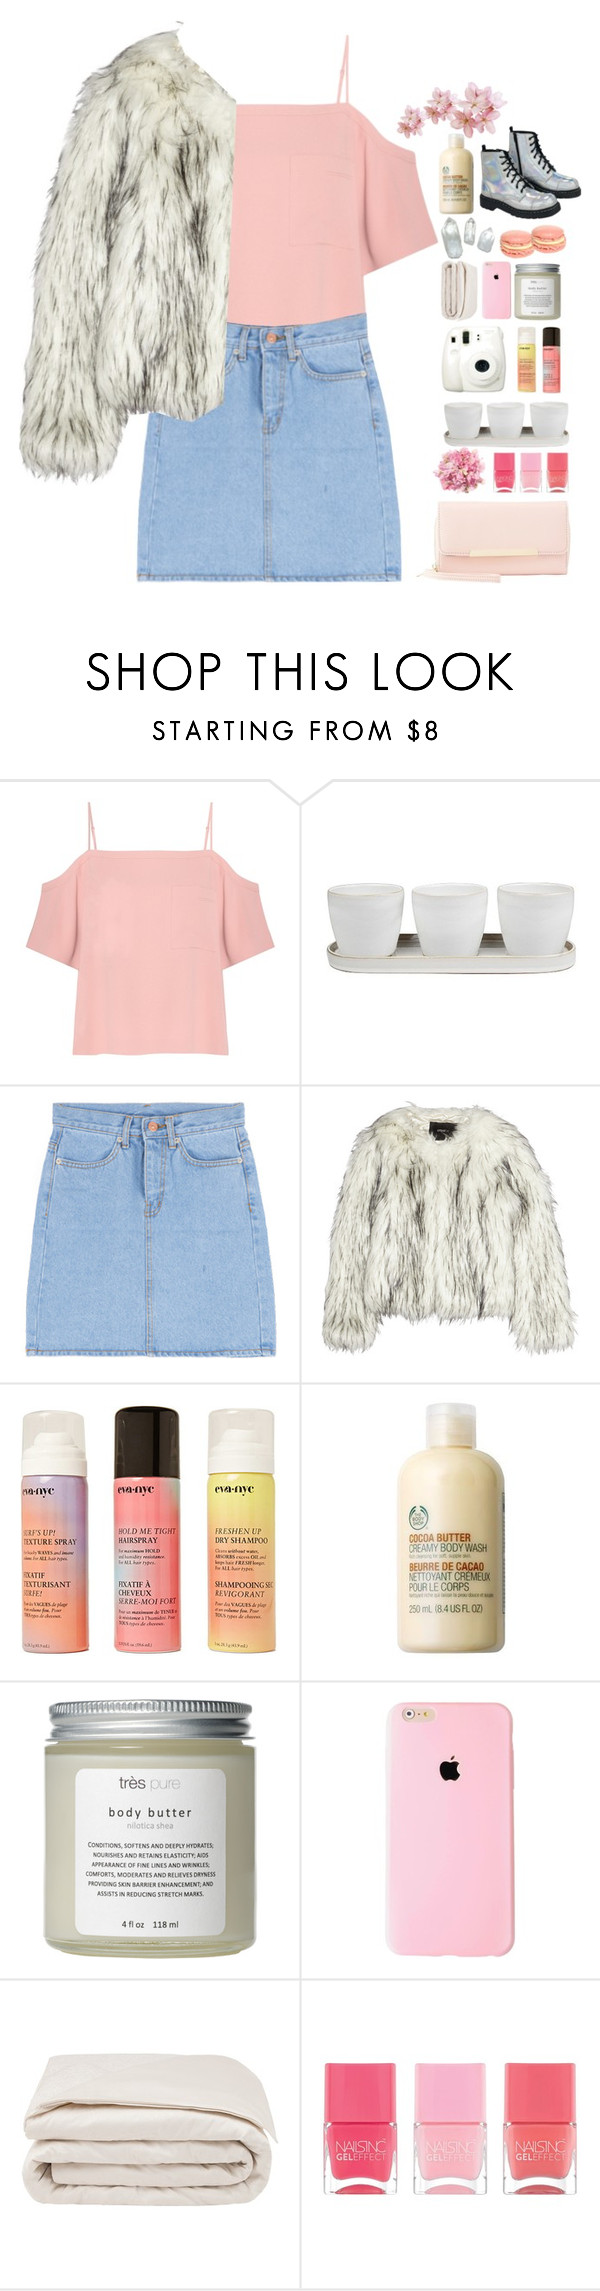 """Happy Birthday xx @moonlightxbby"" by lanadelnotyou ❤ liked on Polyvore featuring T By Alexander Wang, Threshold, Unreal Fur, T.U.K., Fuji, Forever 21, The Body Shop, Très Pure, Frette and Nails Inc."